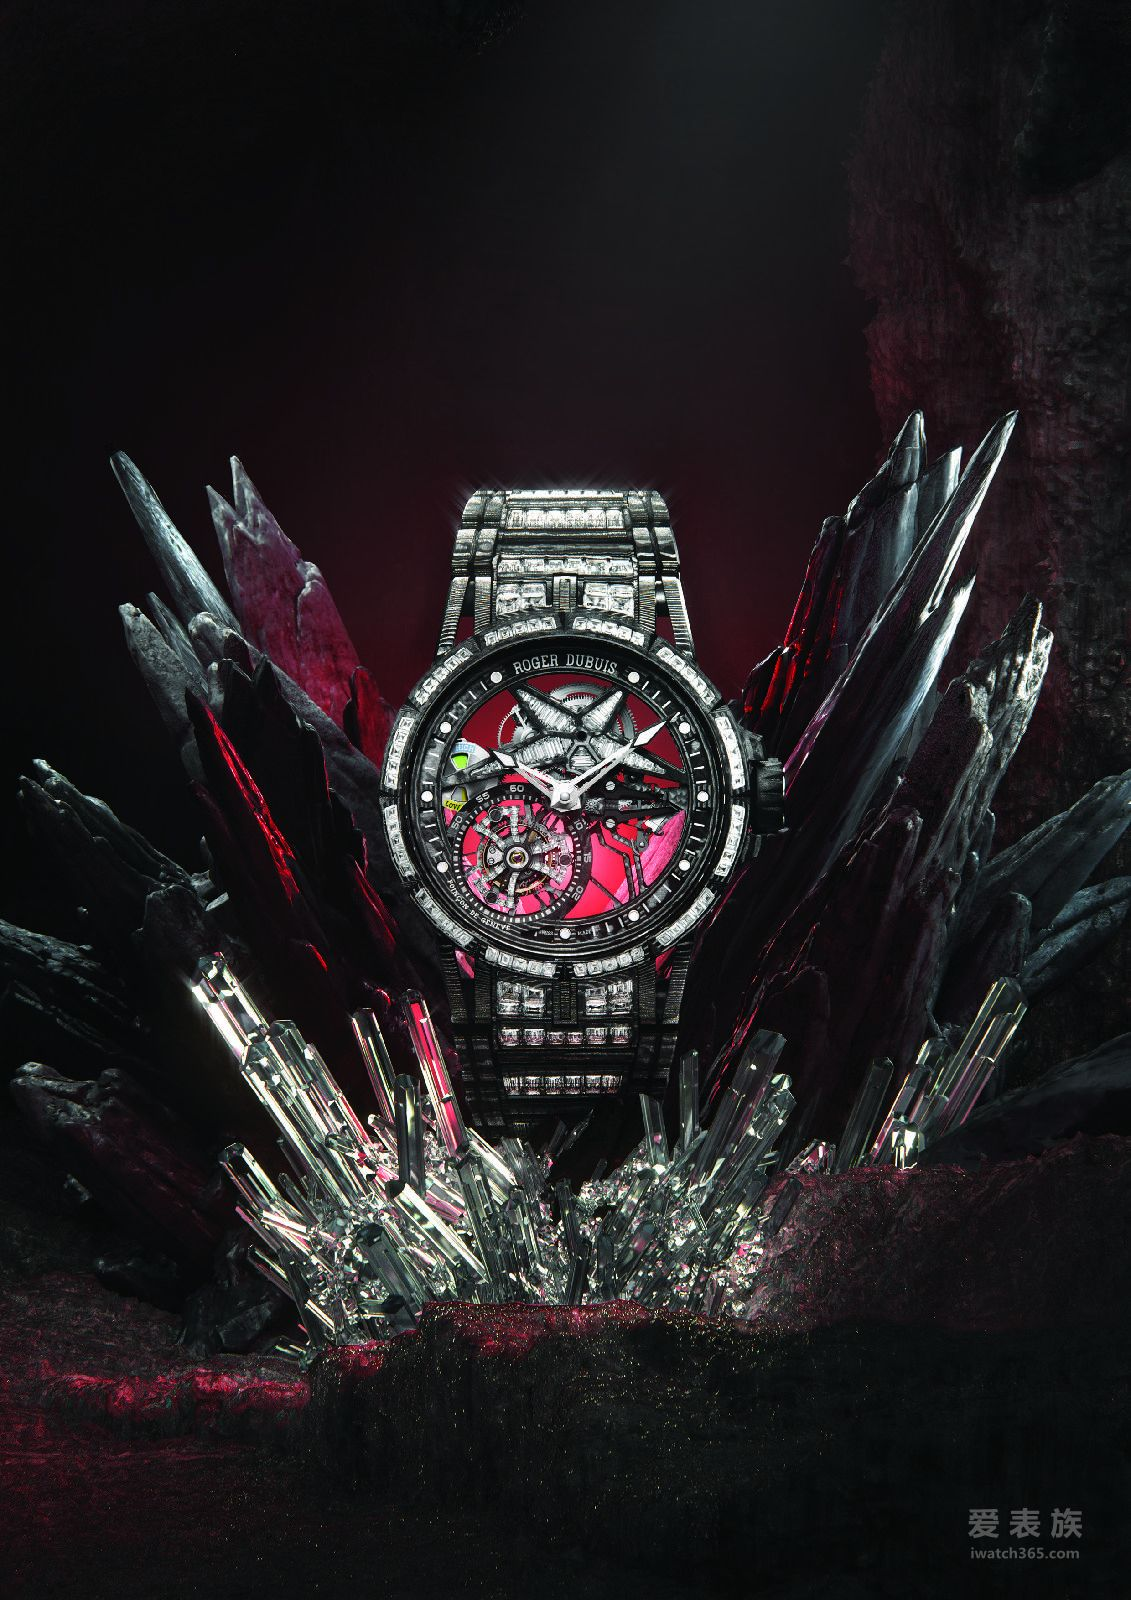 Roger Dubuis罗杰杜彼Mad but Swiss澳门震撼登场